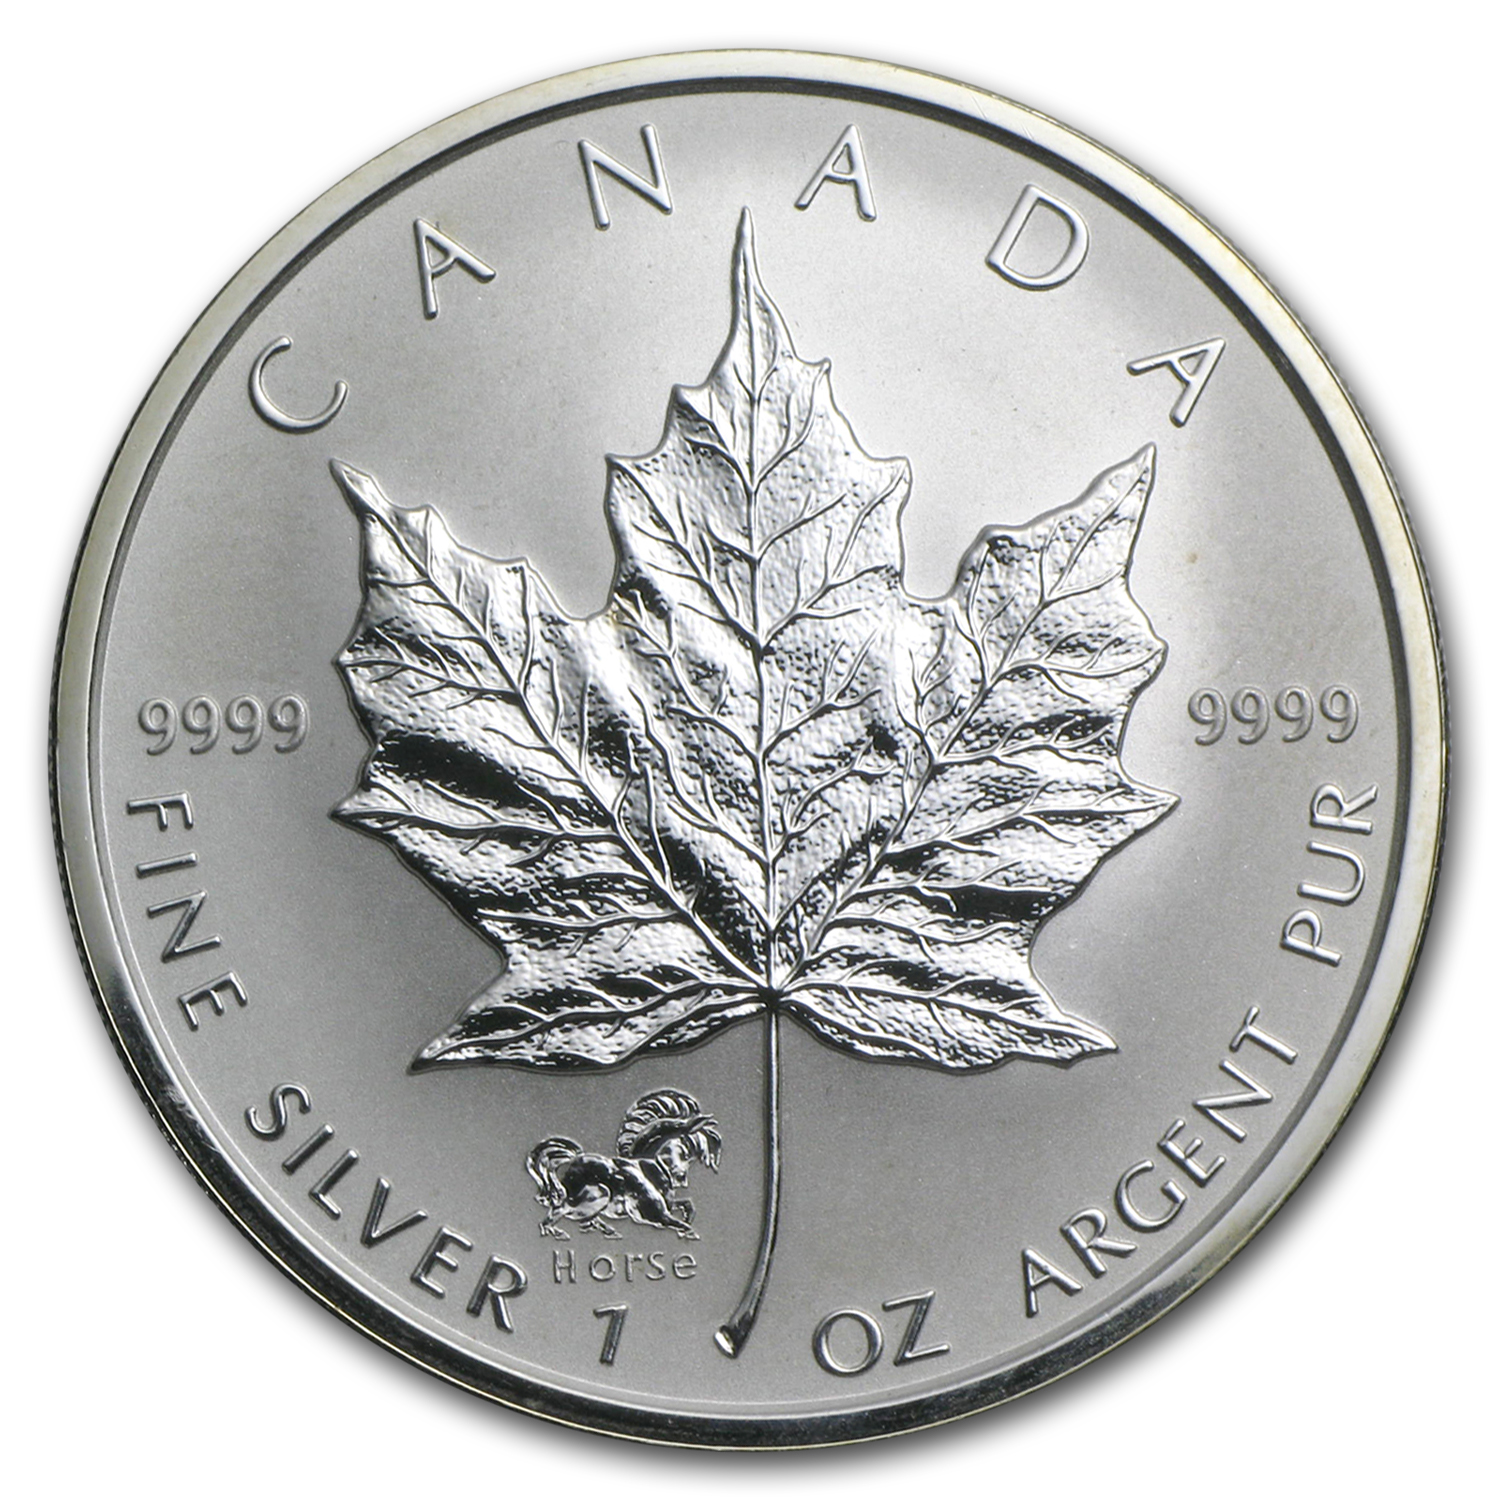 2002 Canada 1 oz Silver Maple Leaf Lunar HORSE Privy